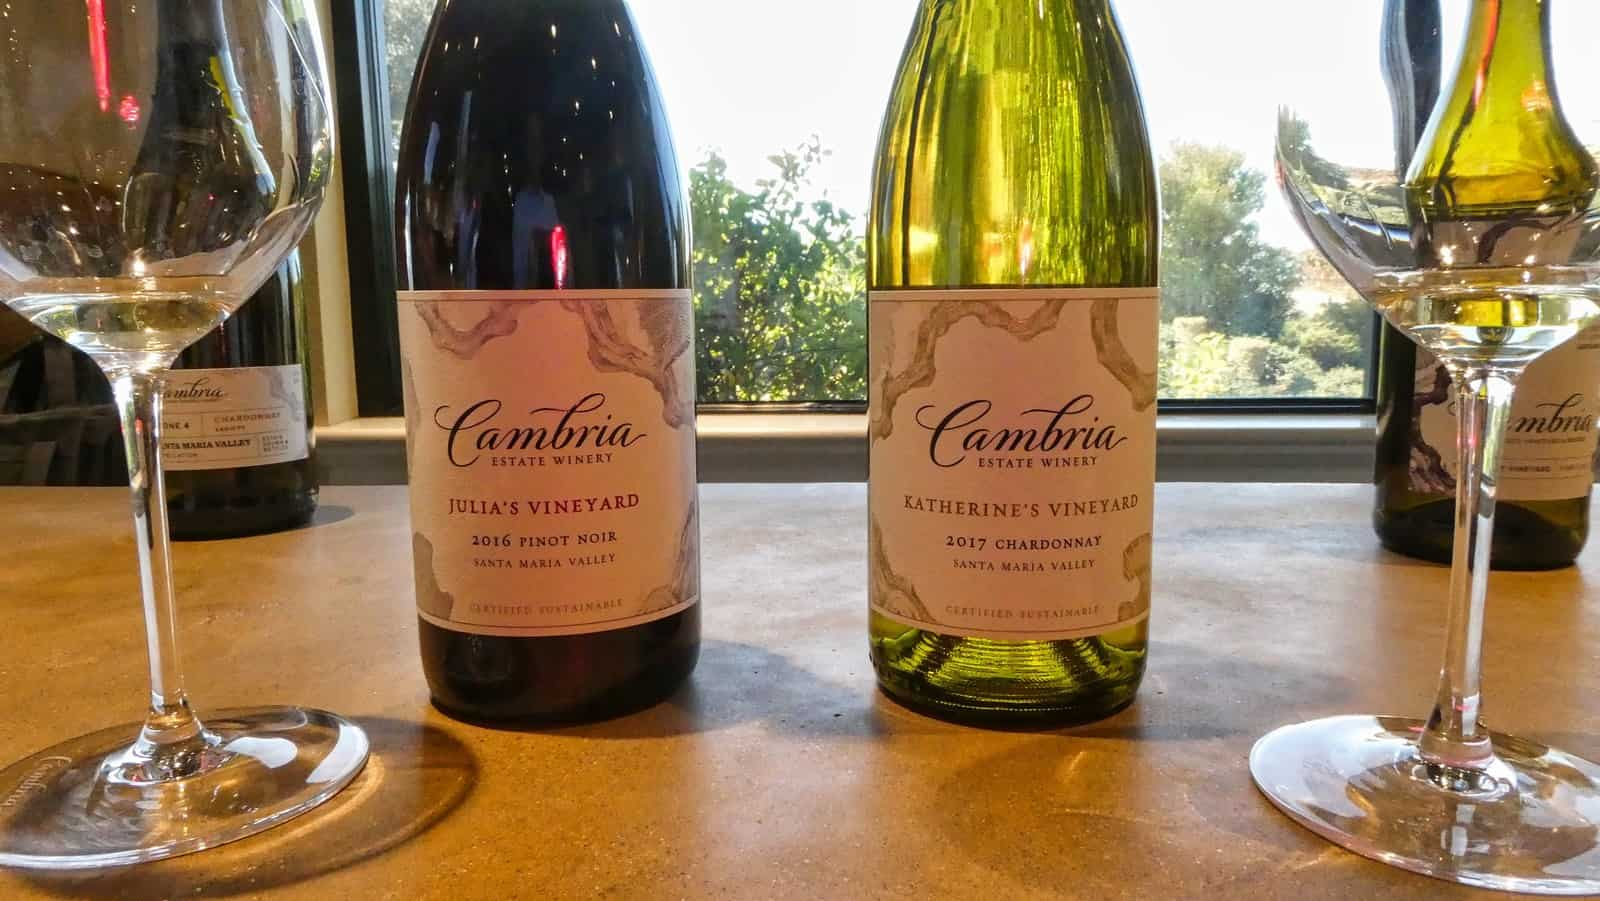 Santa maria wineries Cambria